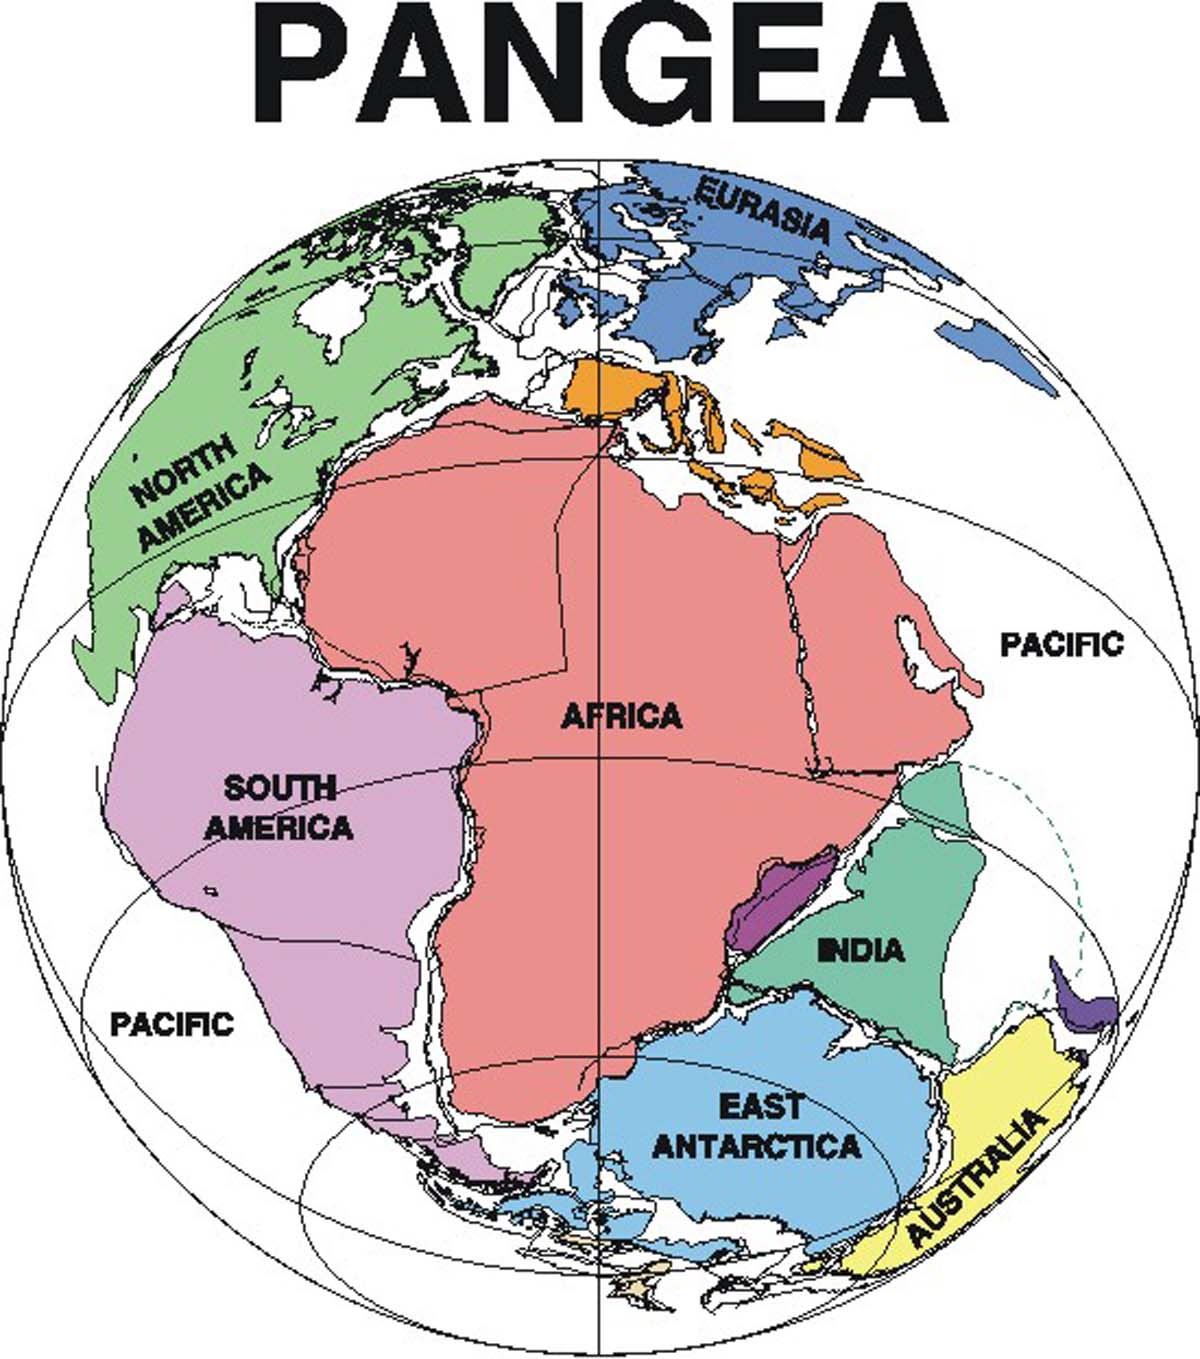 pangea Definition Of Dot Maps on dot map use, dot map disadvantages, dot distribution map, dot map example, dot density map canada, dot map ap human geography, dot plot definition, dot map name,